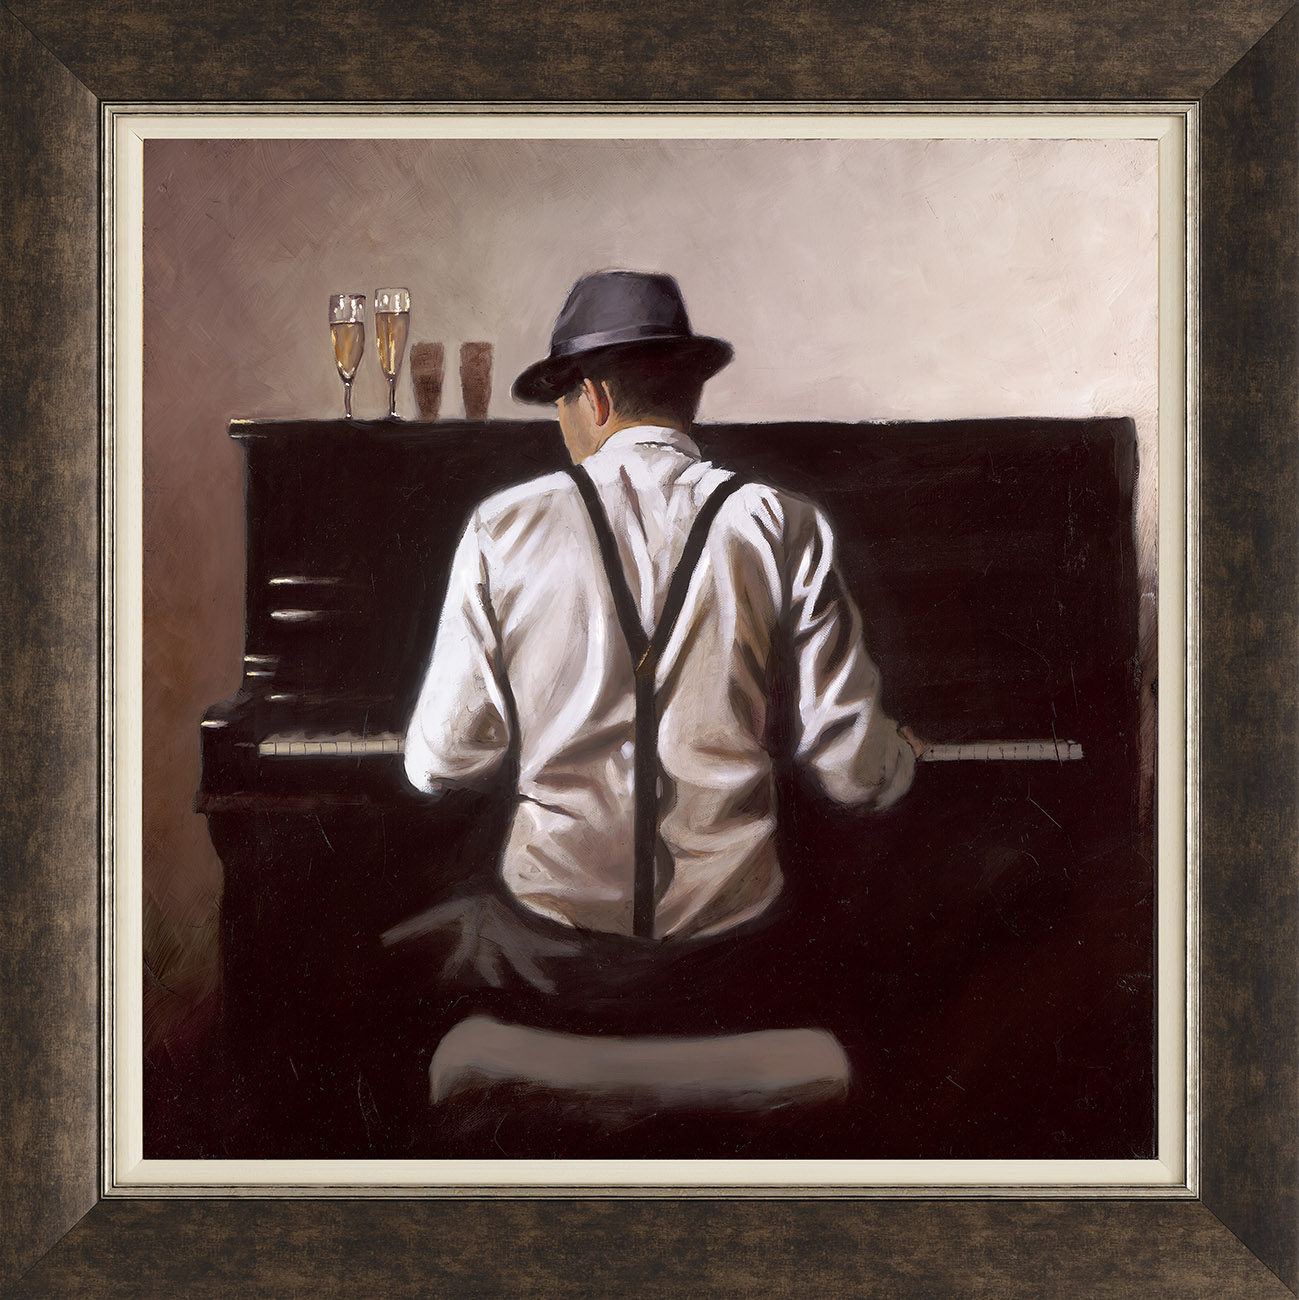 Piano Man by Richard Blunt